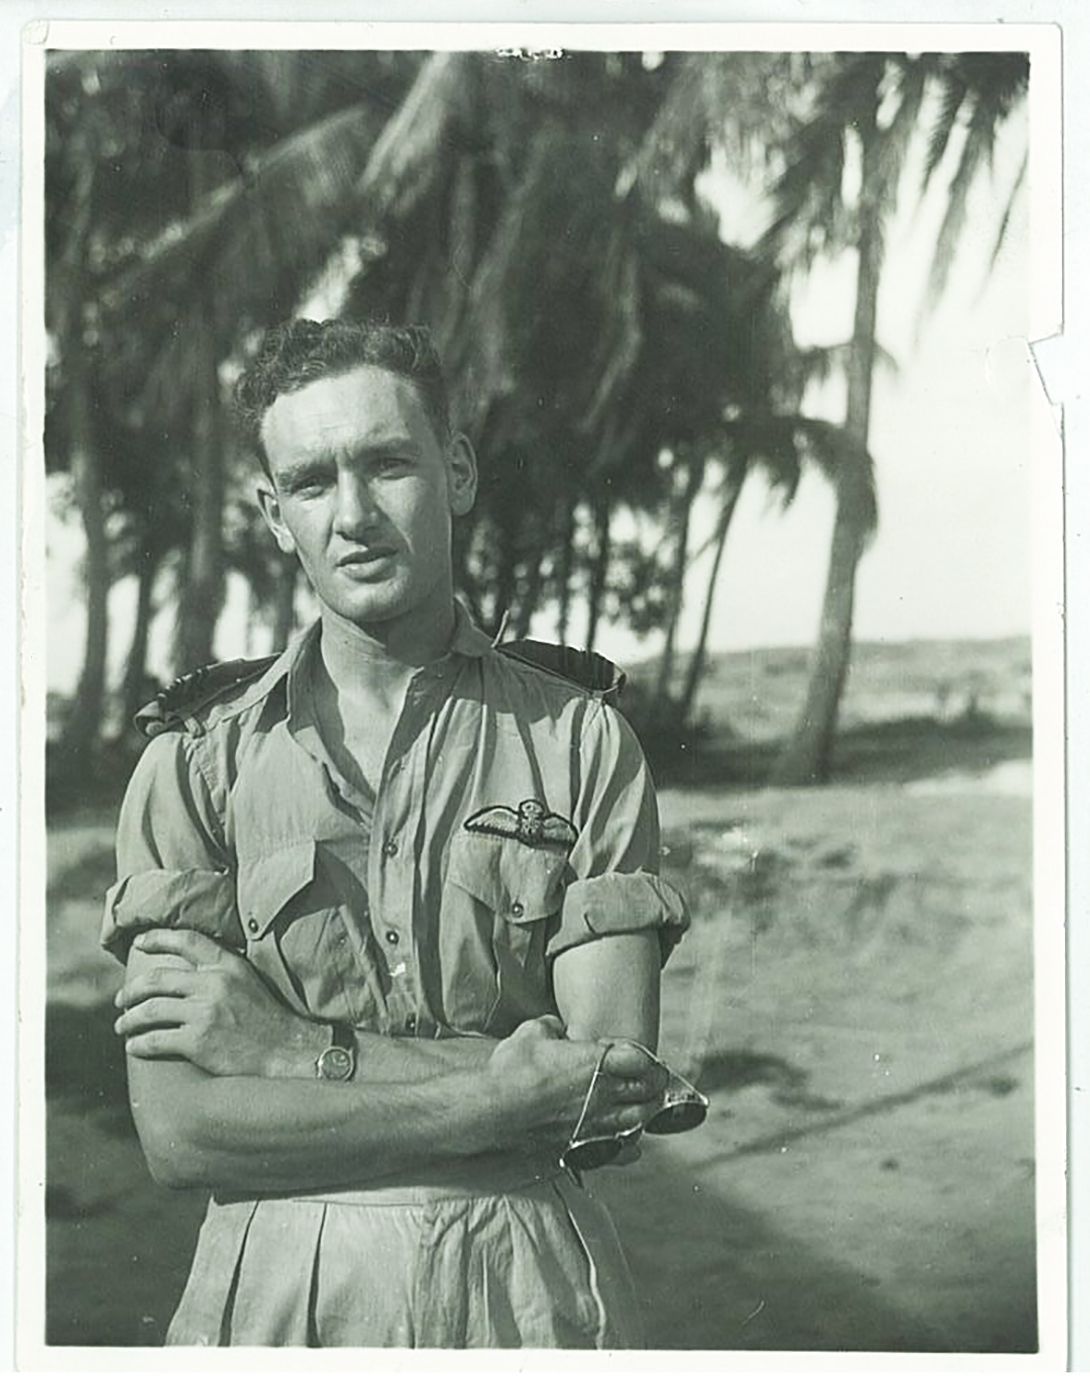 Flying Officer John Hart, from Sackville, New Brunswick, flew Spitfires with the Royal Air Force's No. 602 Squadron during the Battle of Britain. This photo was taken during a tour in India later in the war. PHOTO: Courtesy of John Hart